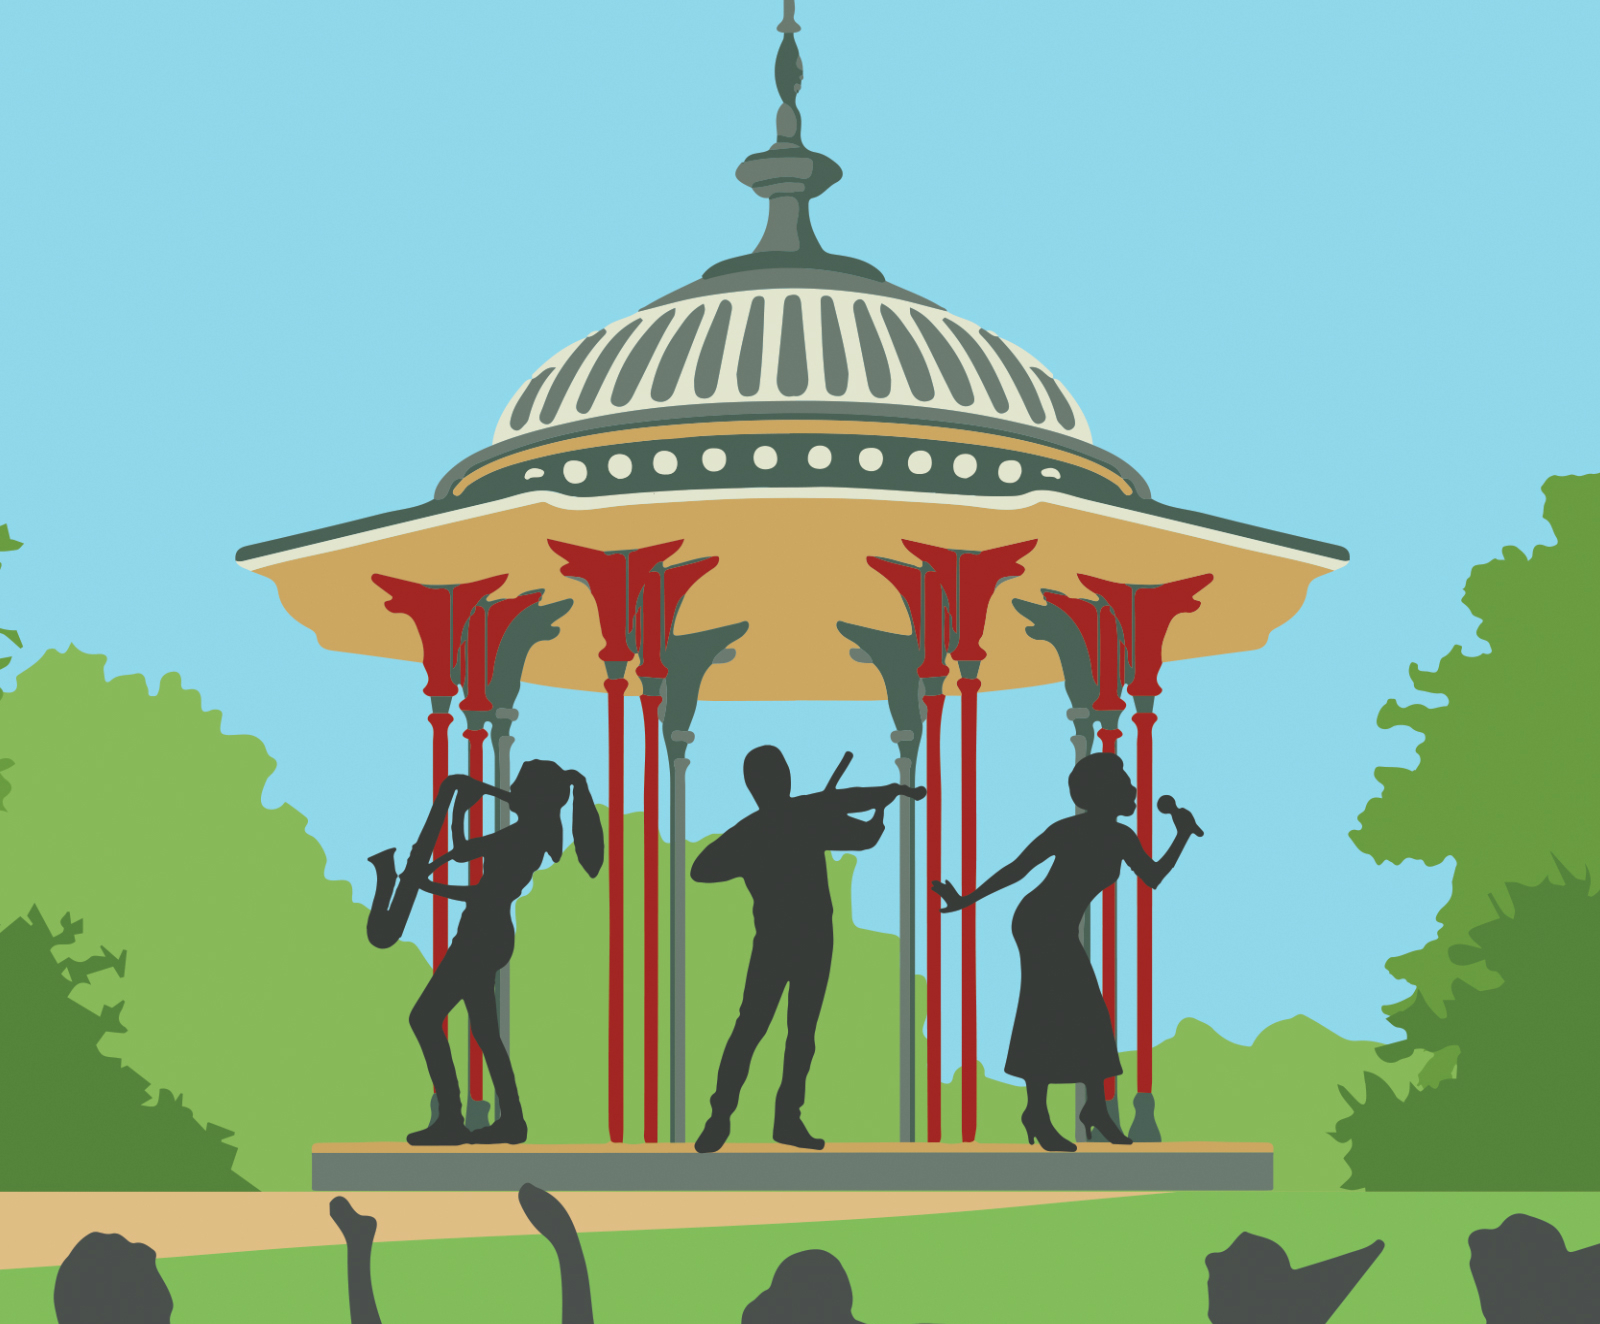 2019 Clapham Common Bandstand Concert Poster